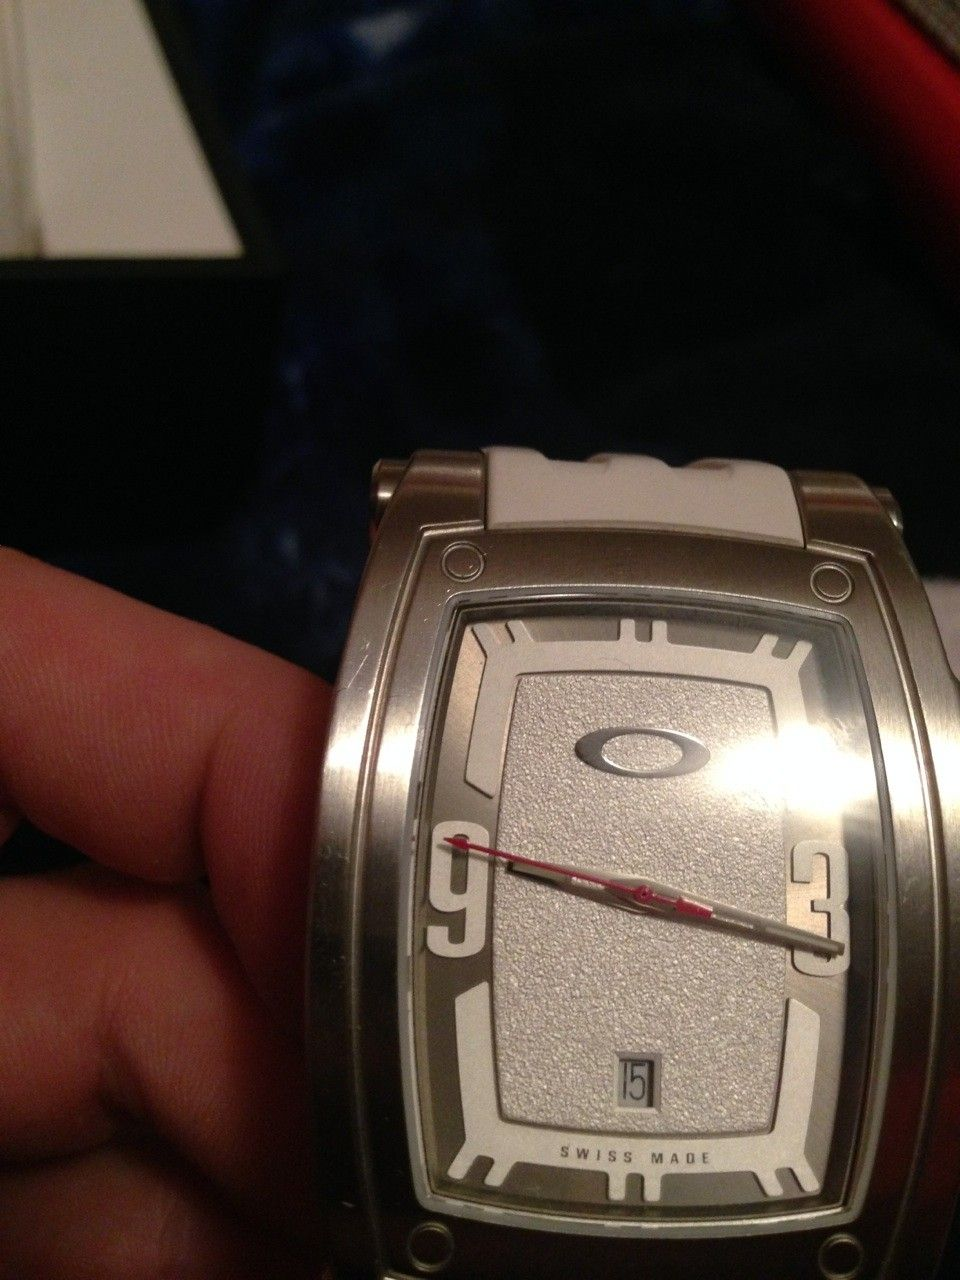 /WTS White Warrant Watch - sm1u.jpg